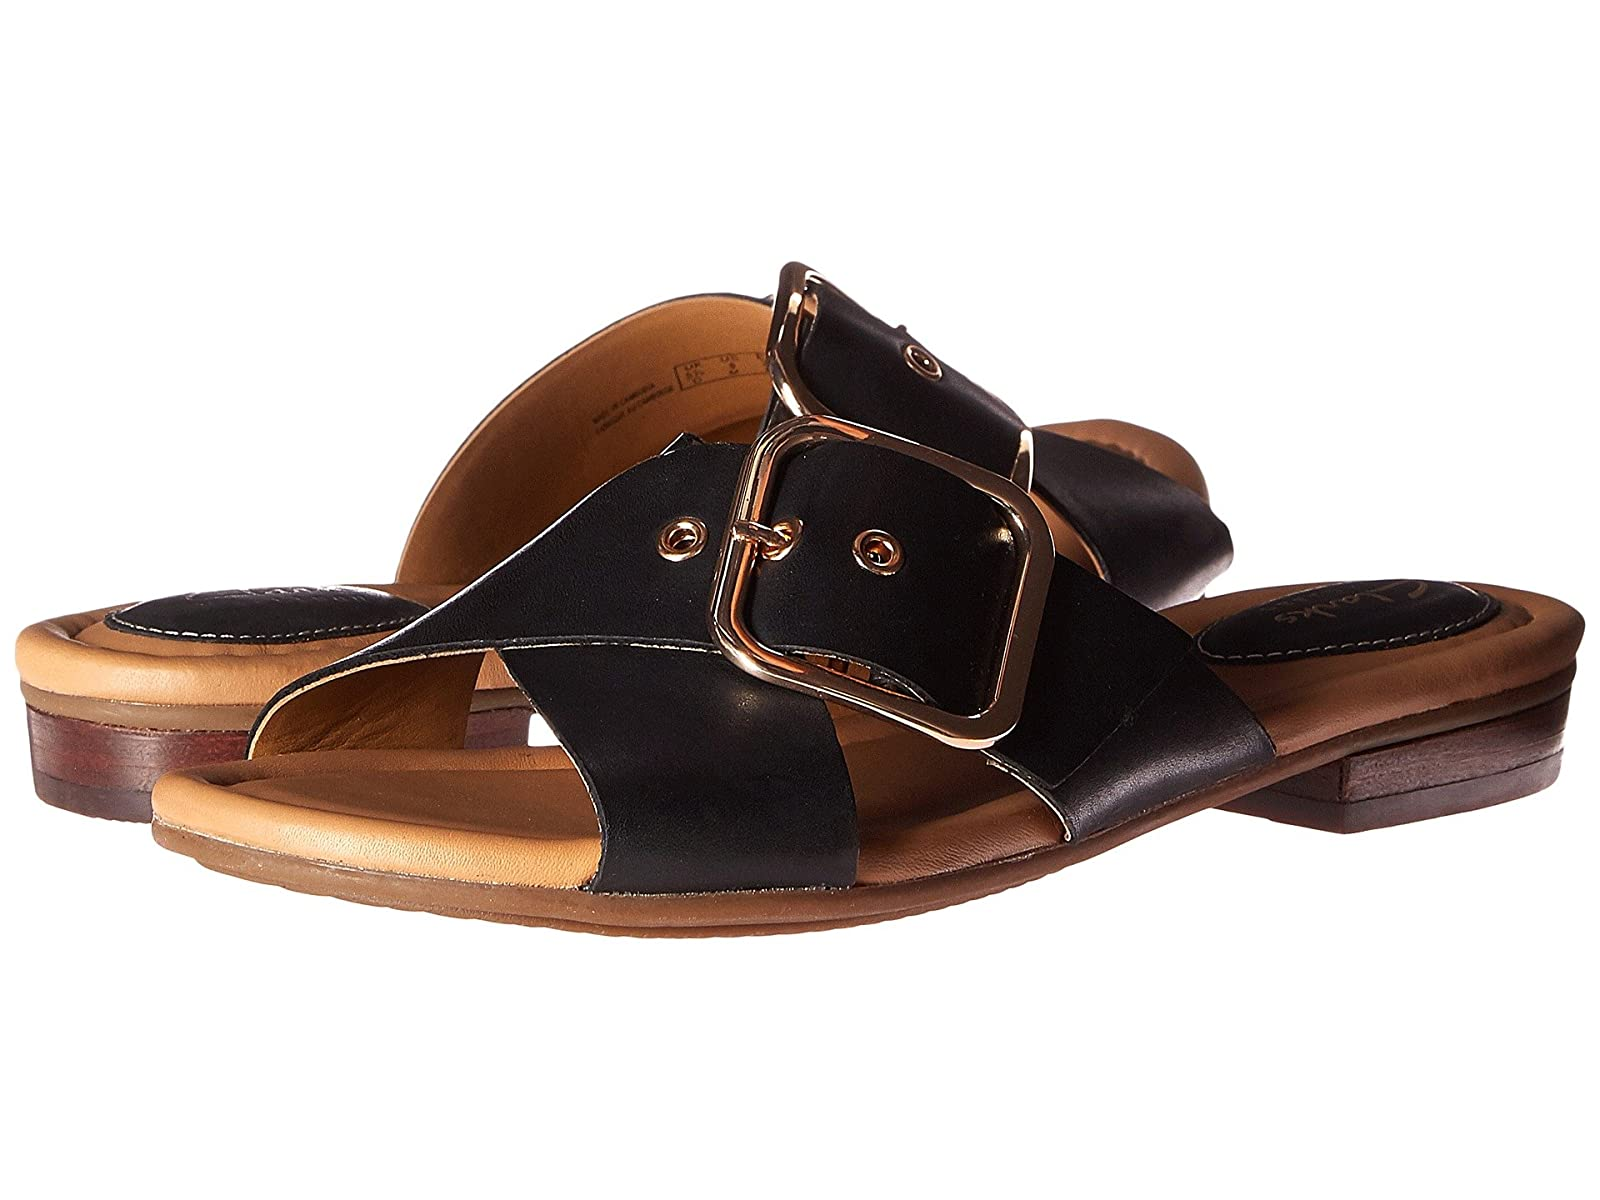 Clarks Viveca GwenCheap and distinctive eye-catching shoes